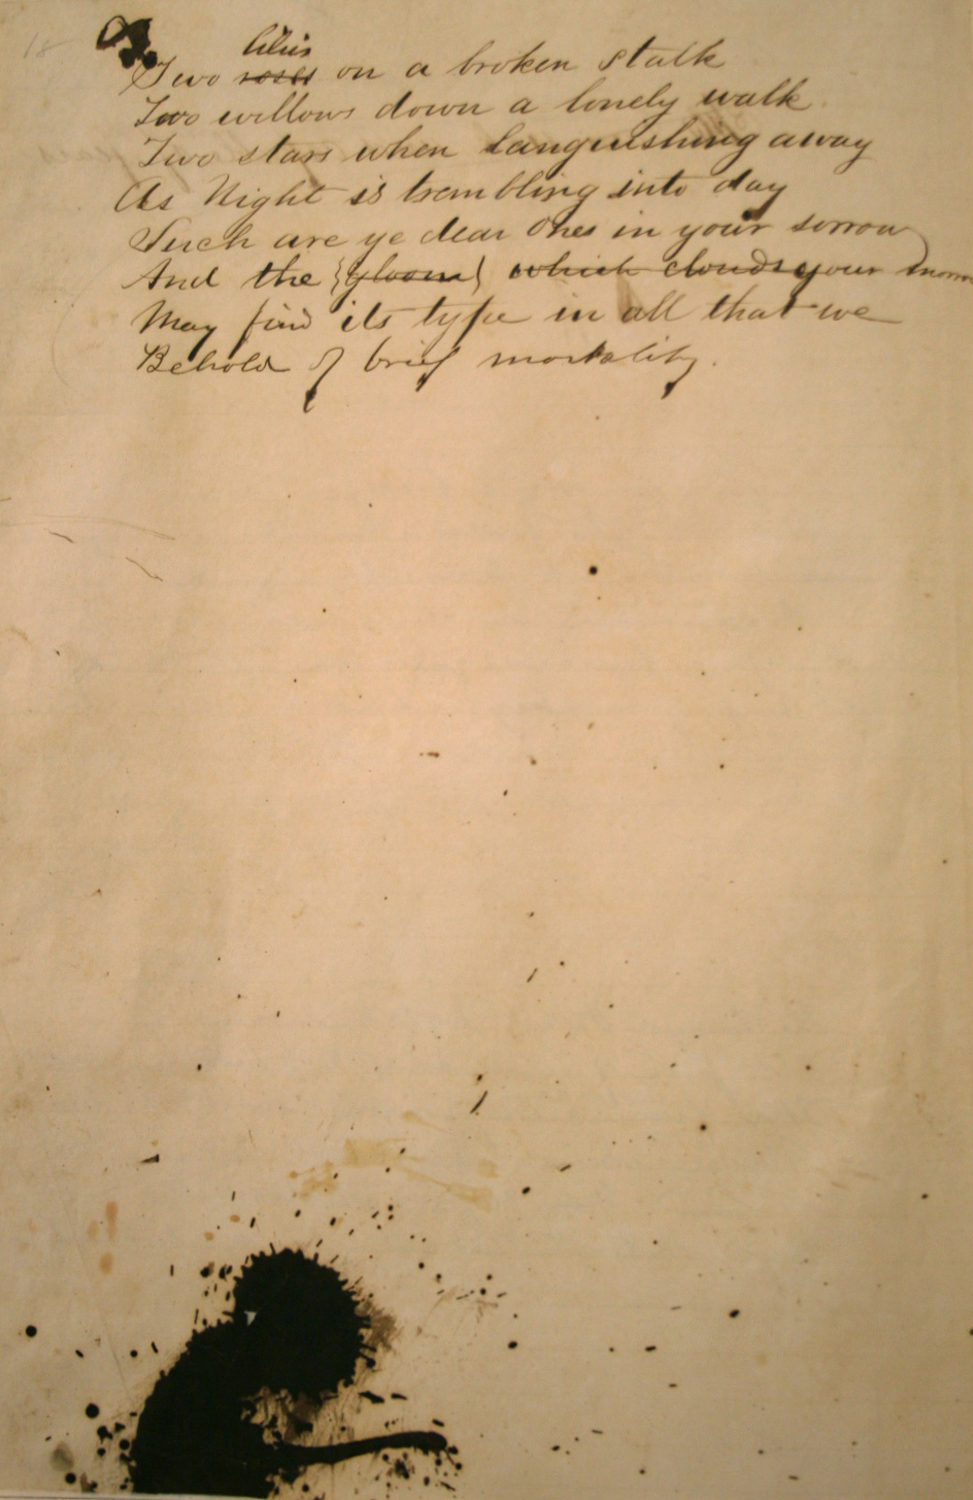 Blood-stained manuscript from Charleston Library Society